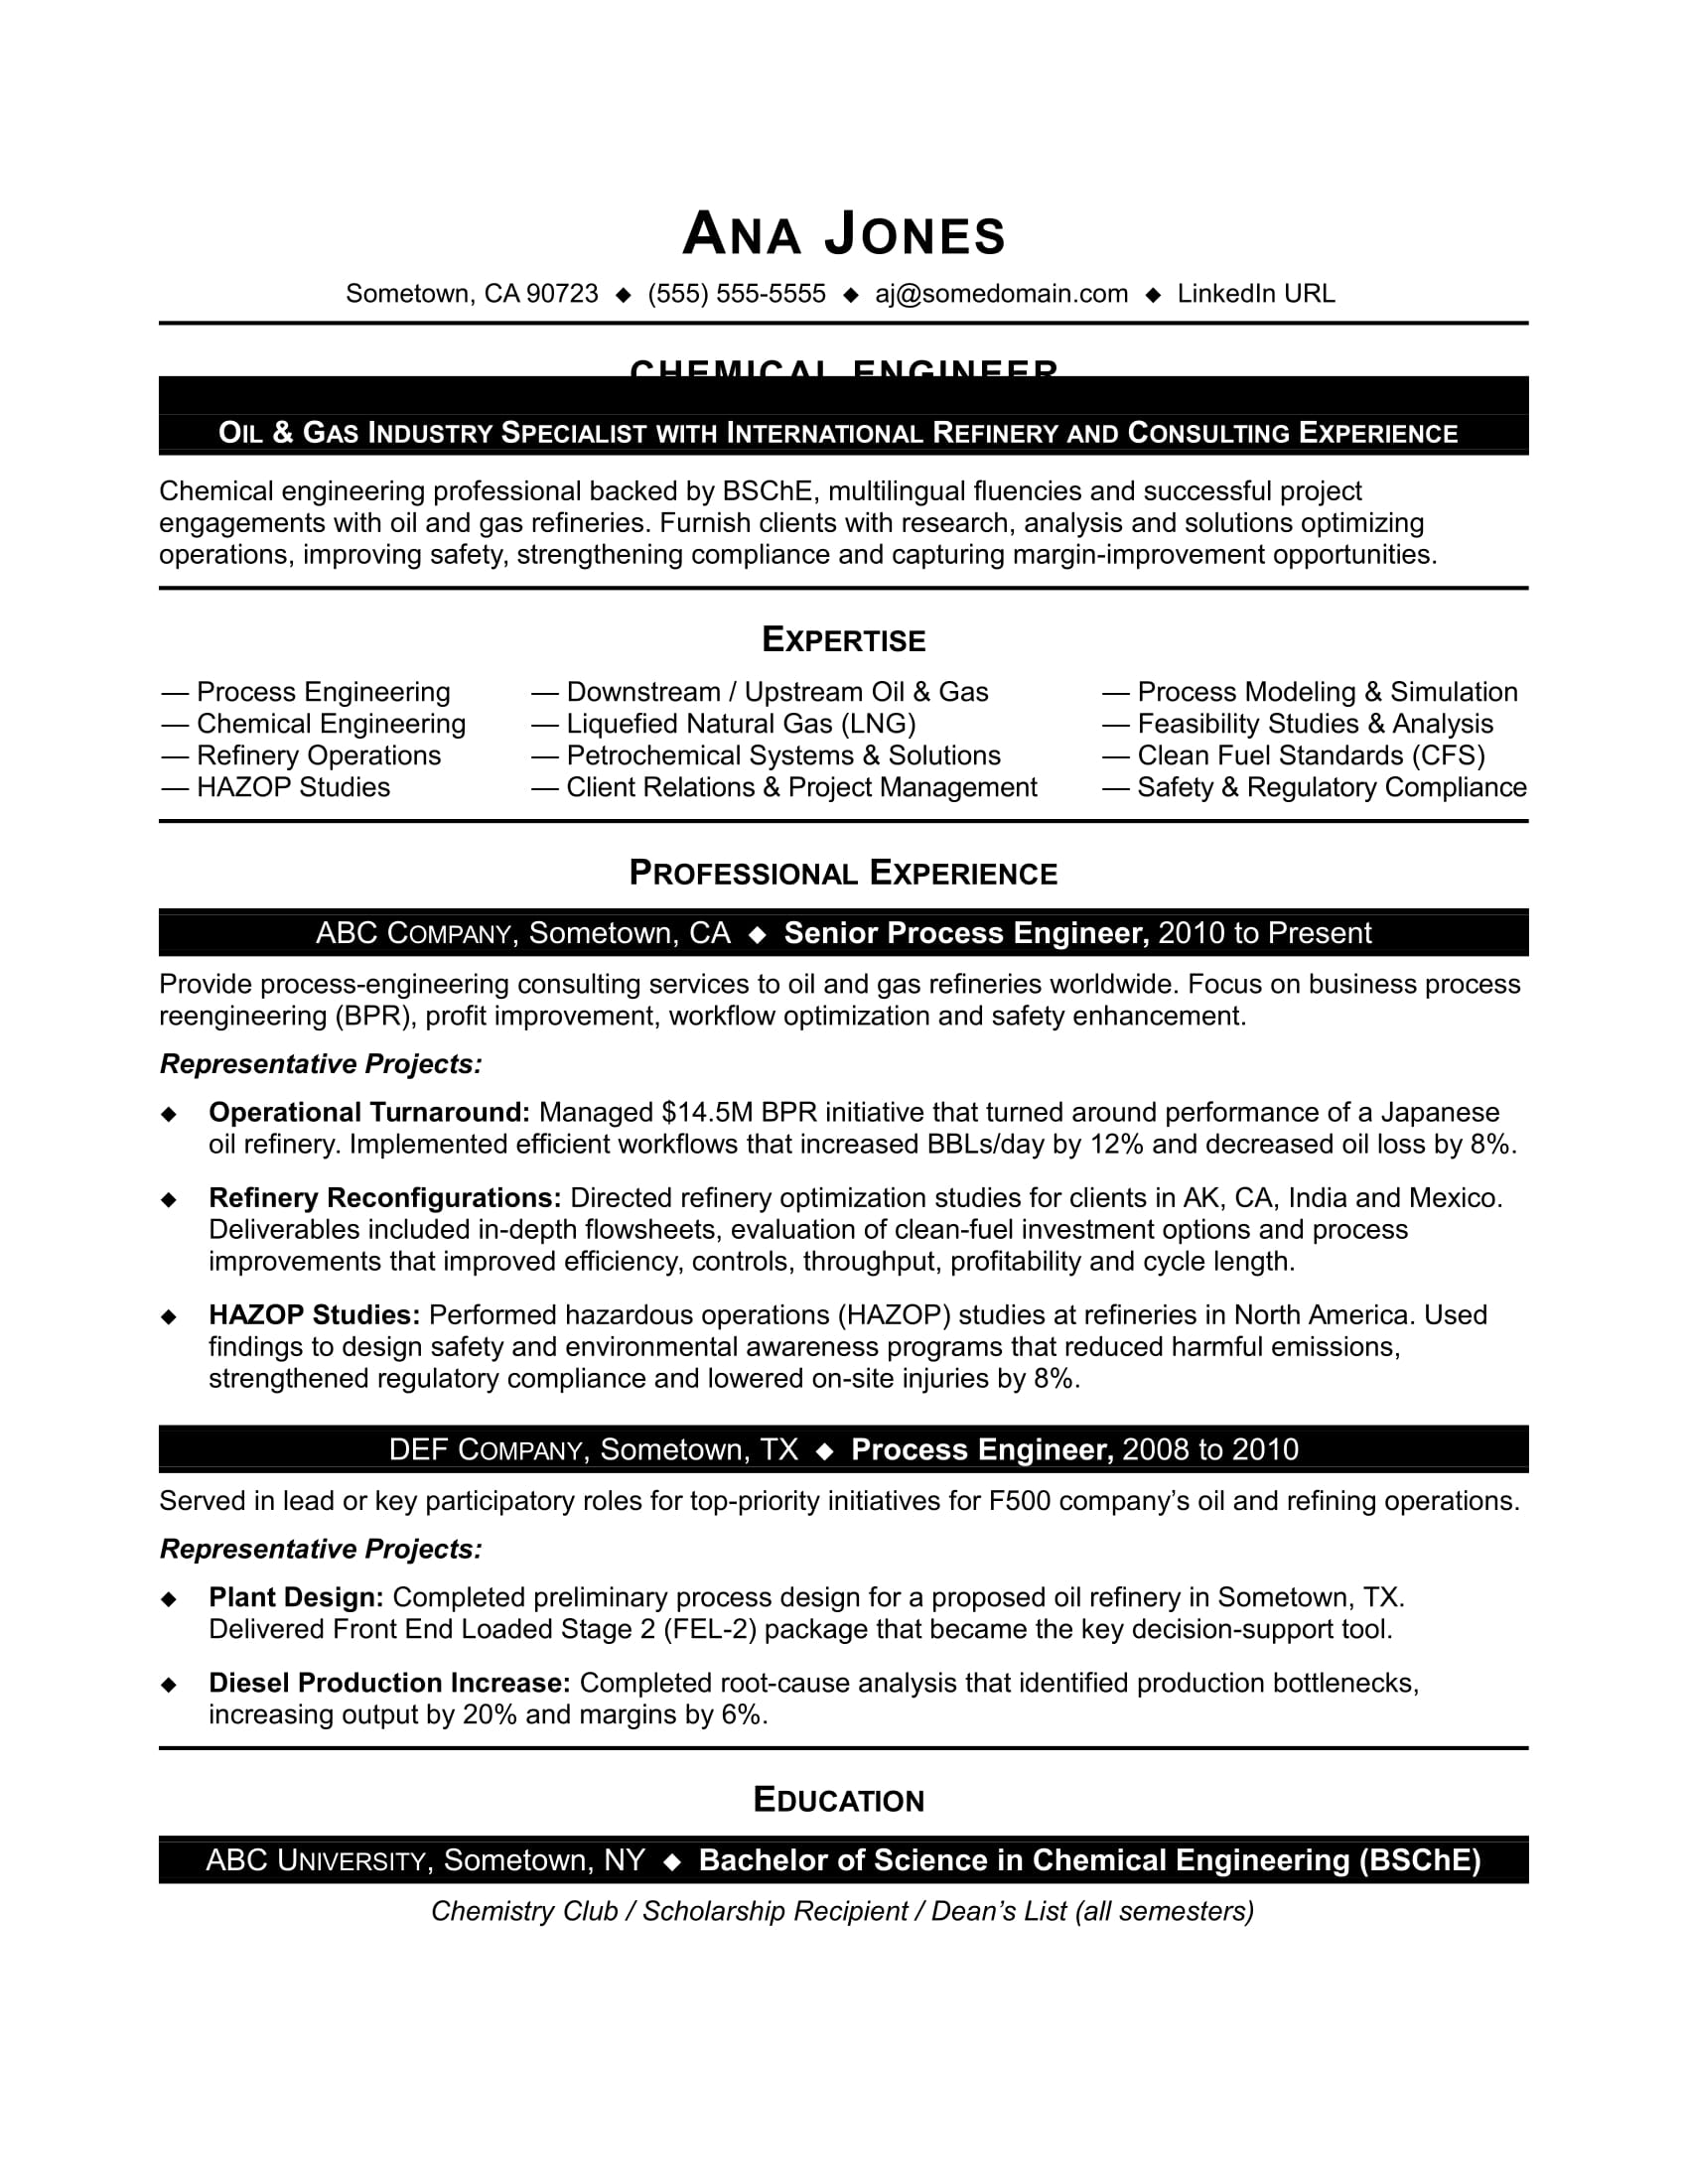 Sample resume for entry level chemical engineer  Monstercom